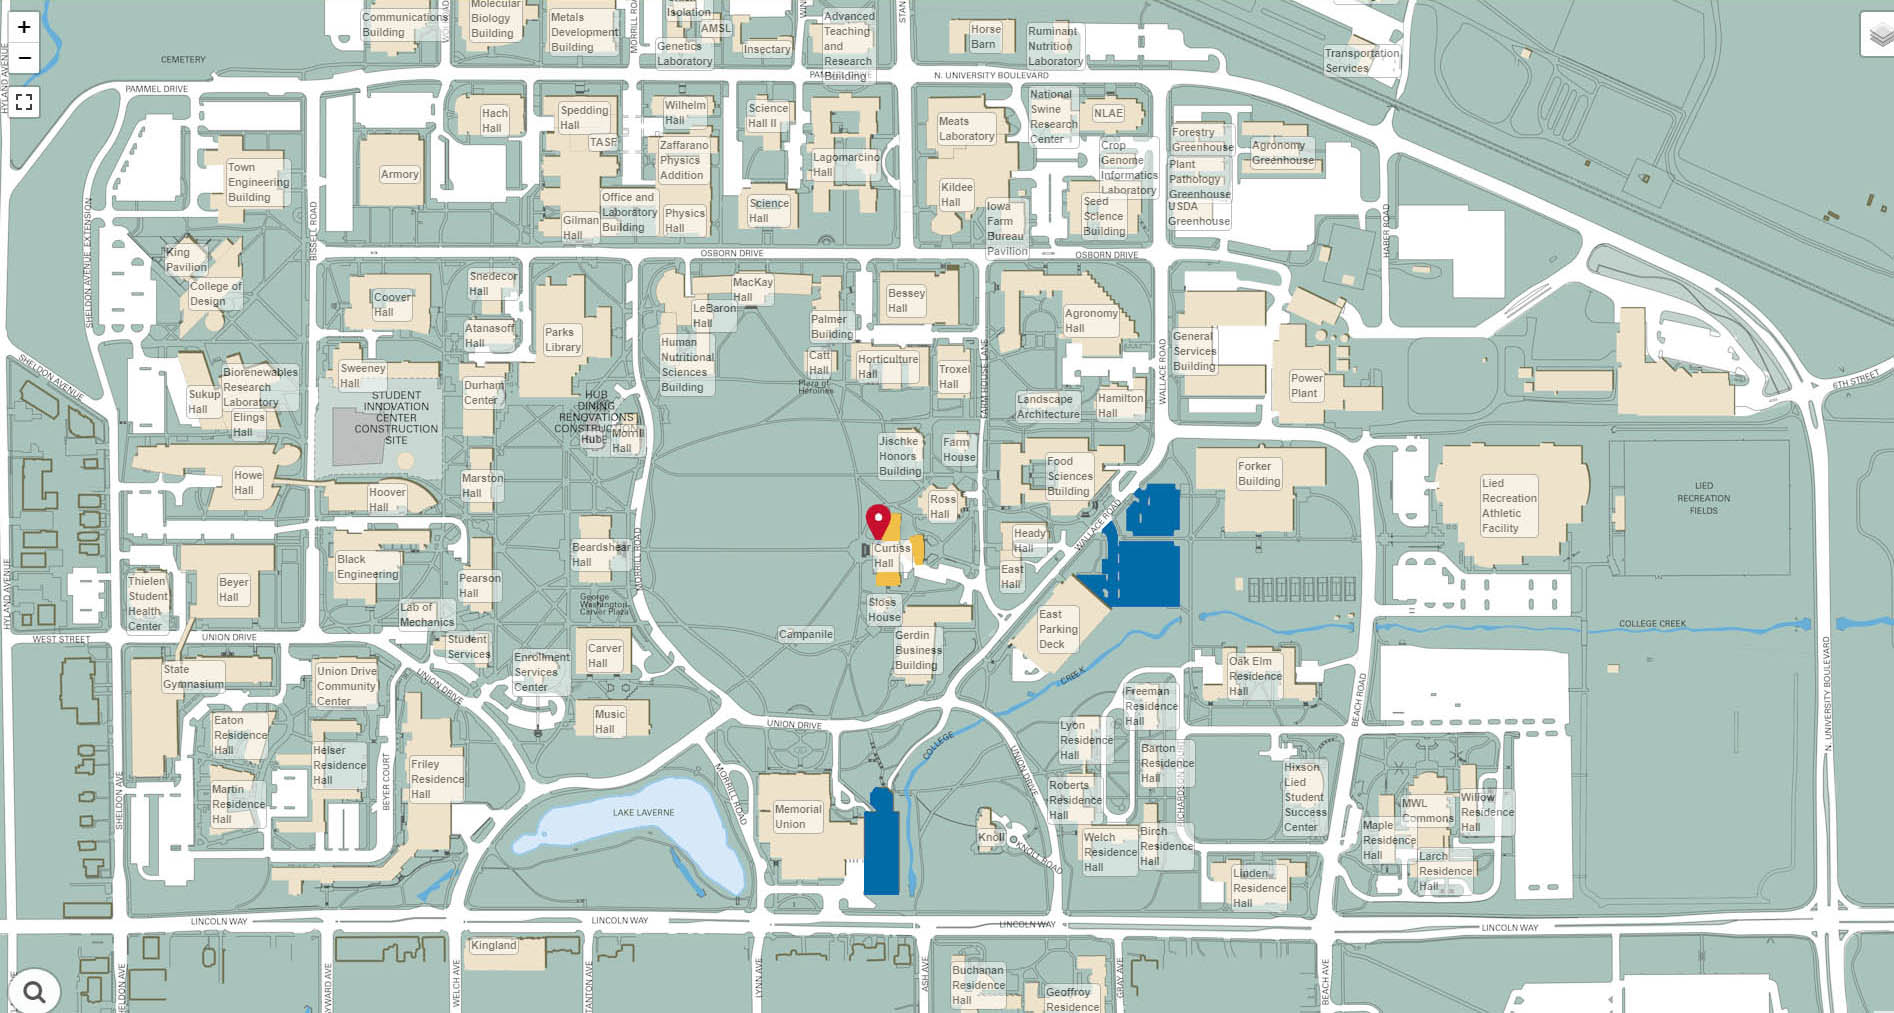 Iowa State University campus map